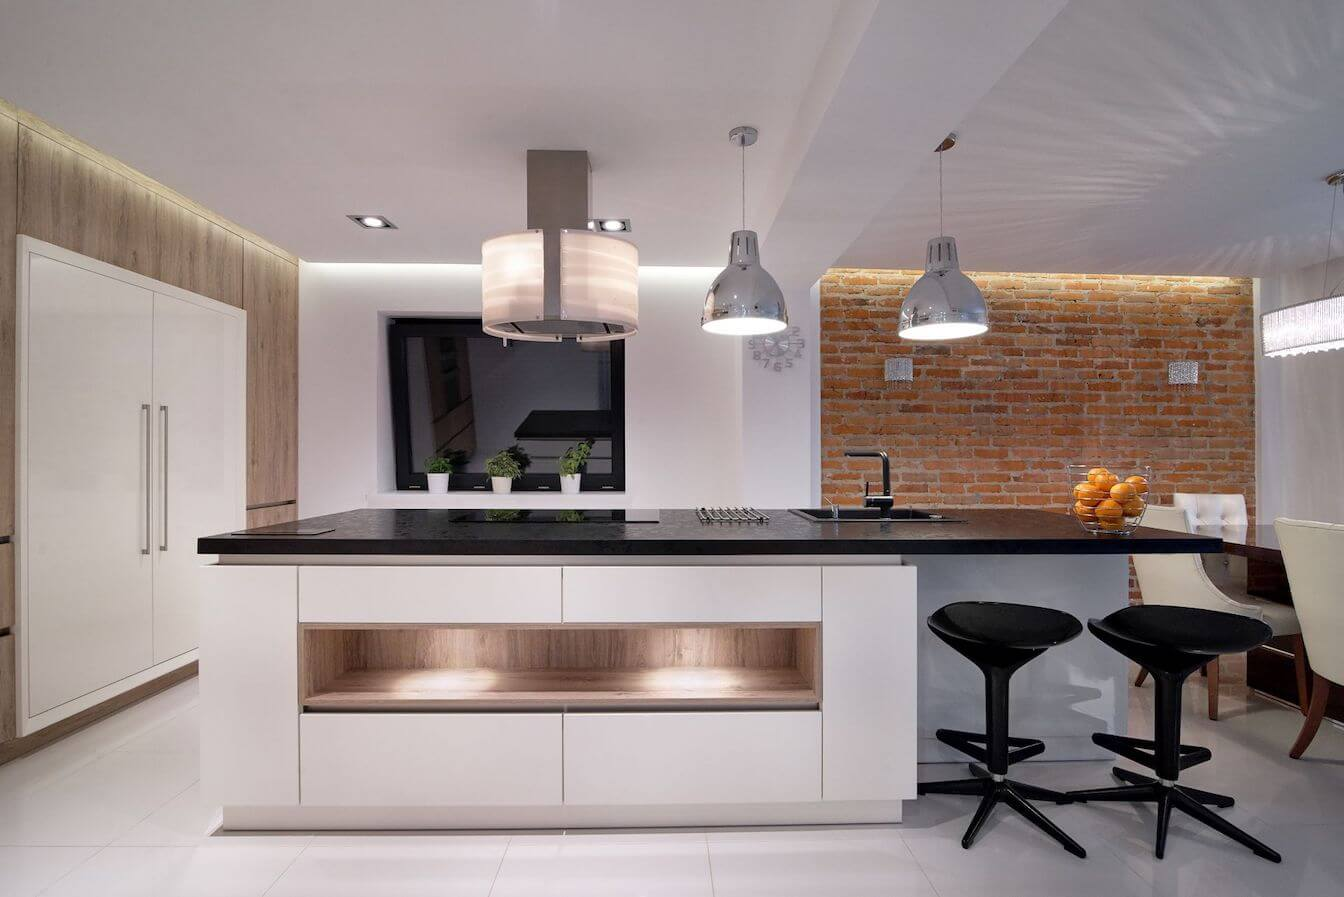 5 simple kitchen lighting tips you need to know in 2018 simple kitchen lighting - Kchenbeleuchtung Layout